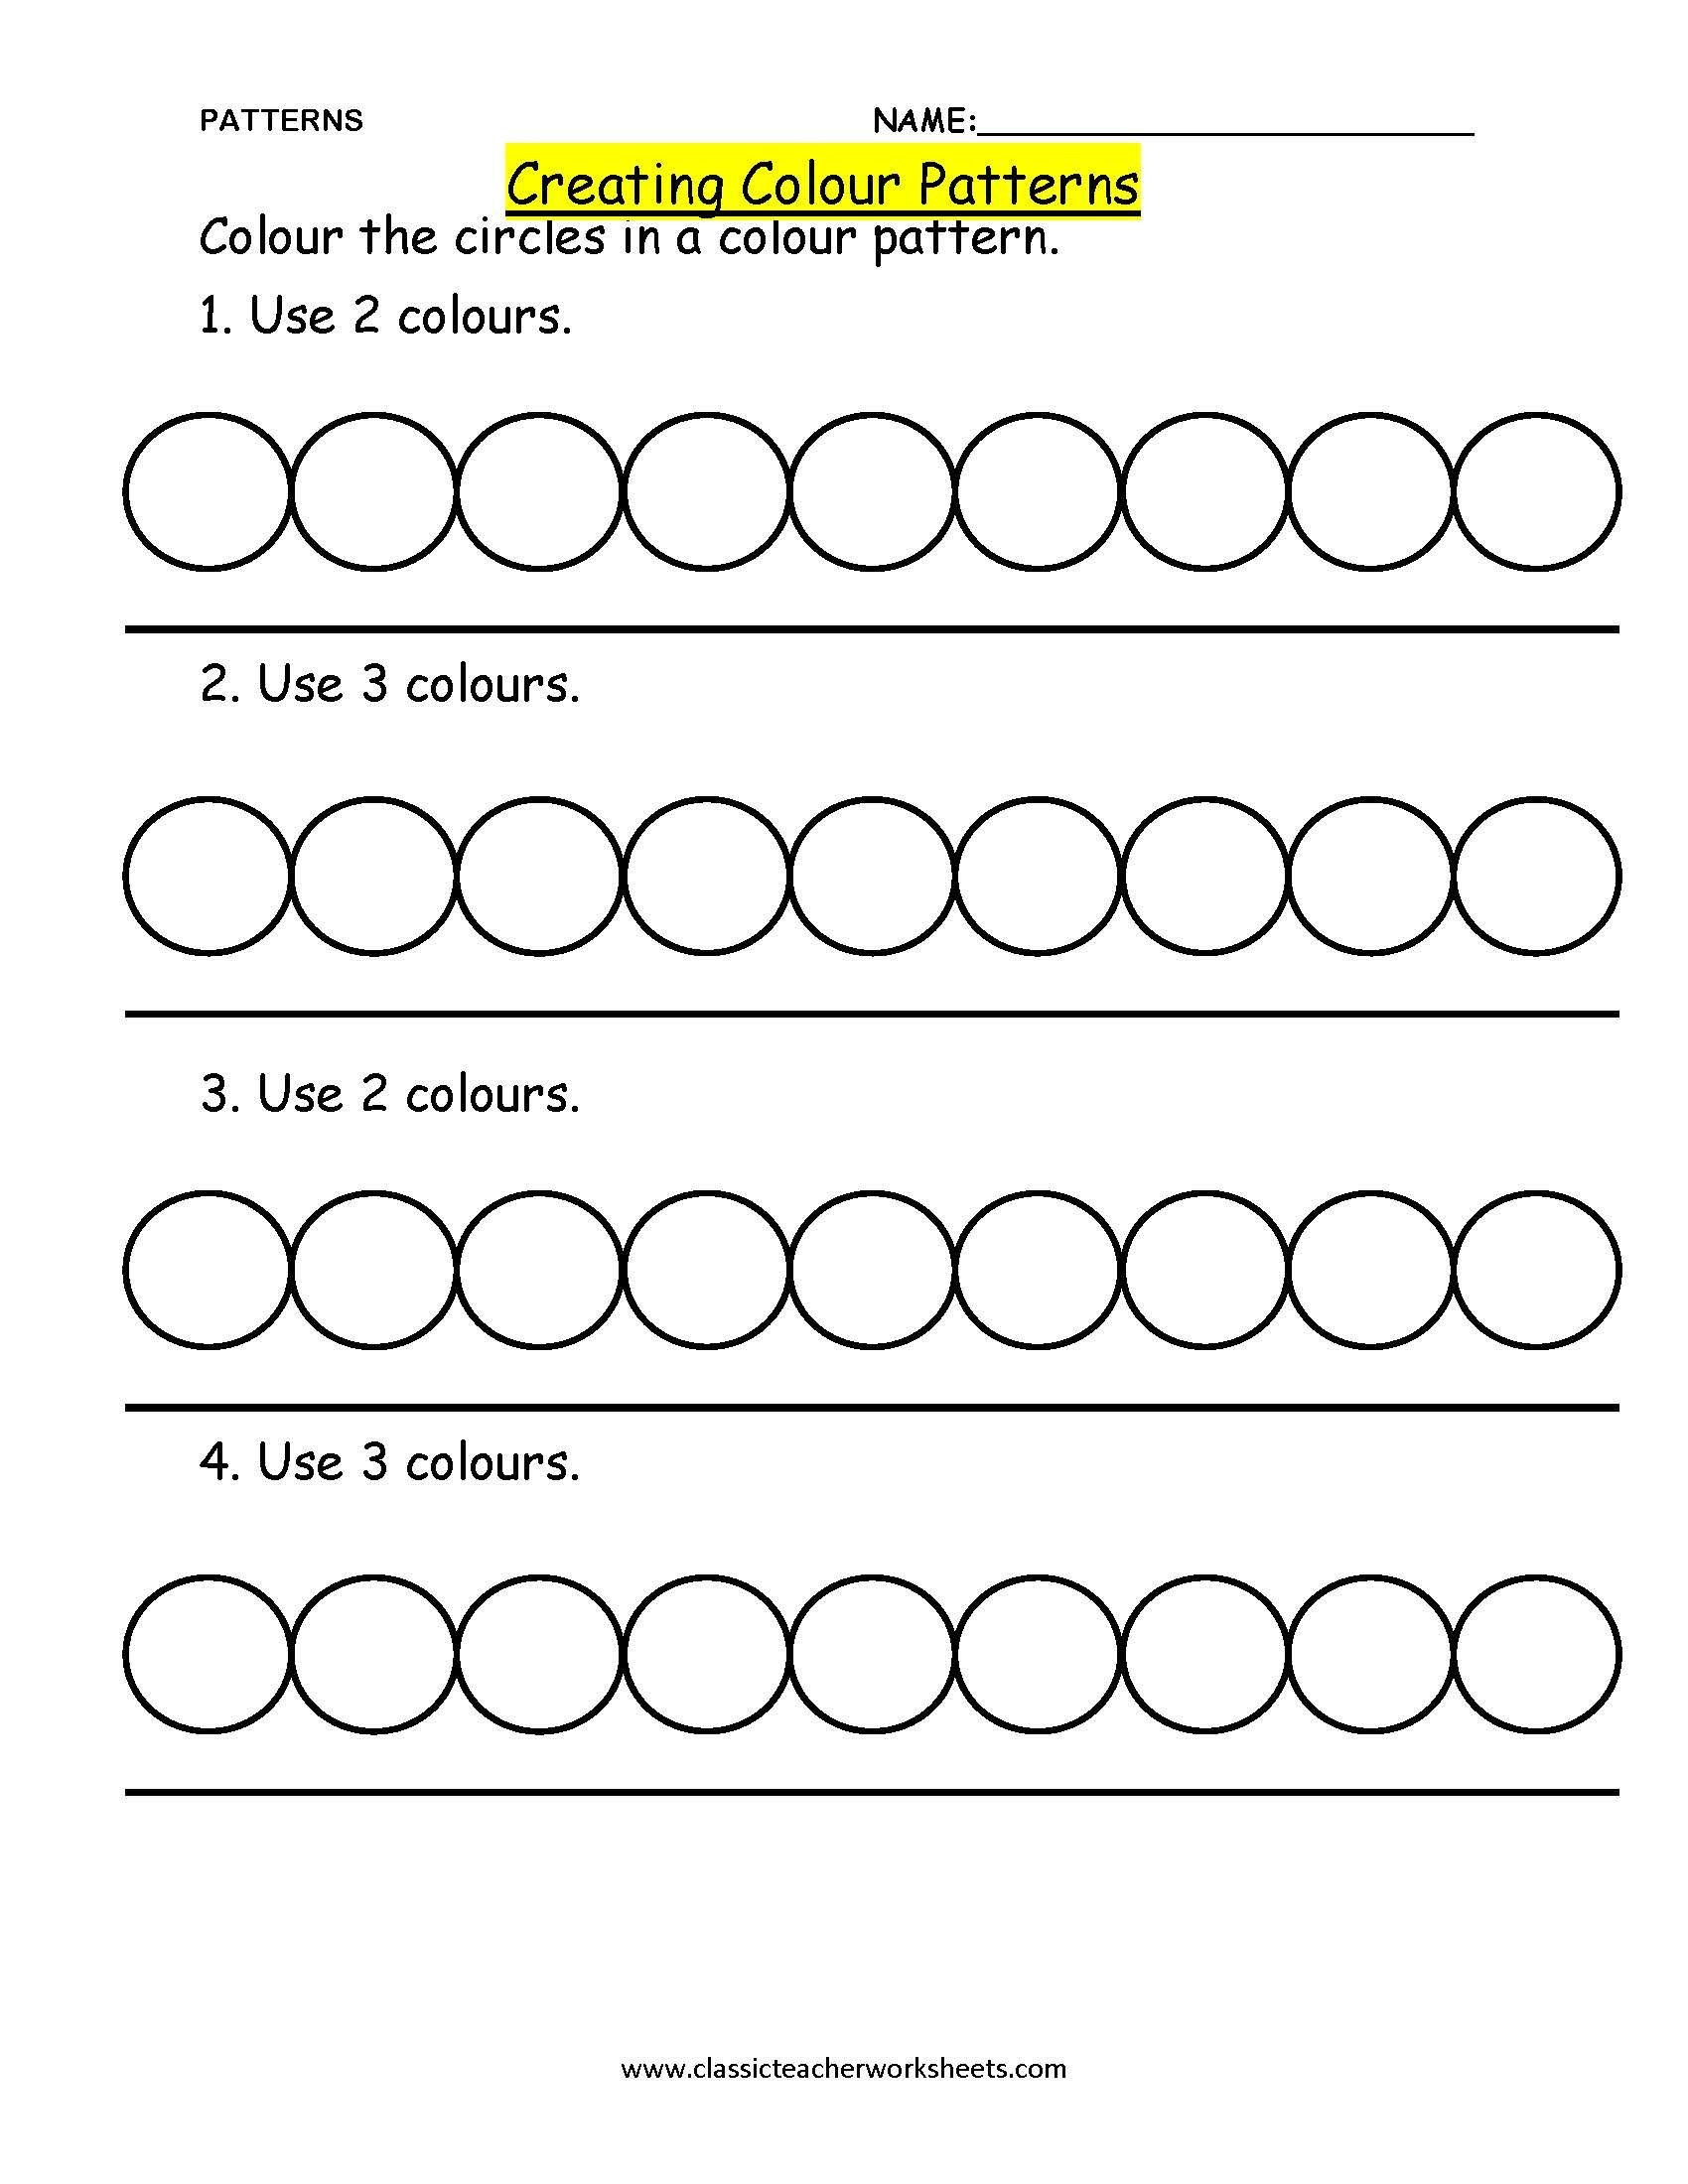 Kindergarten Ab Pattern Worksheets Worksheets Phenomenal Patternts Image Inspirationst